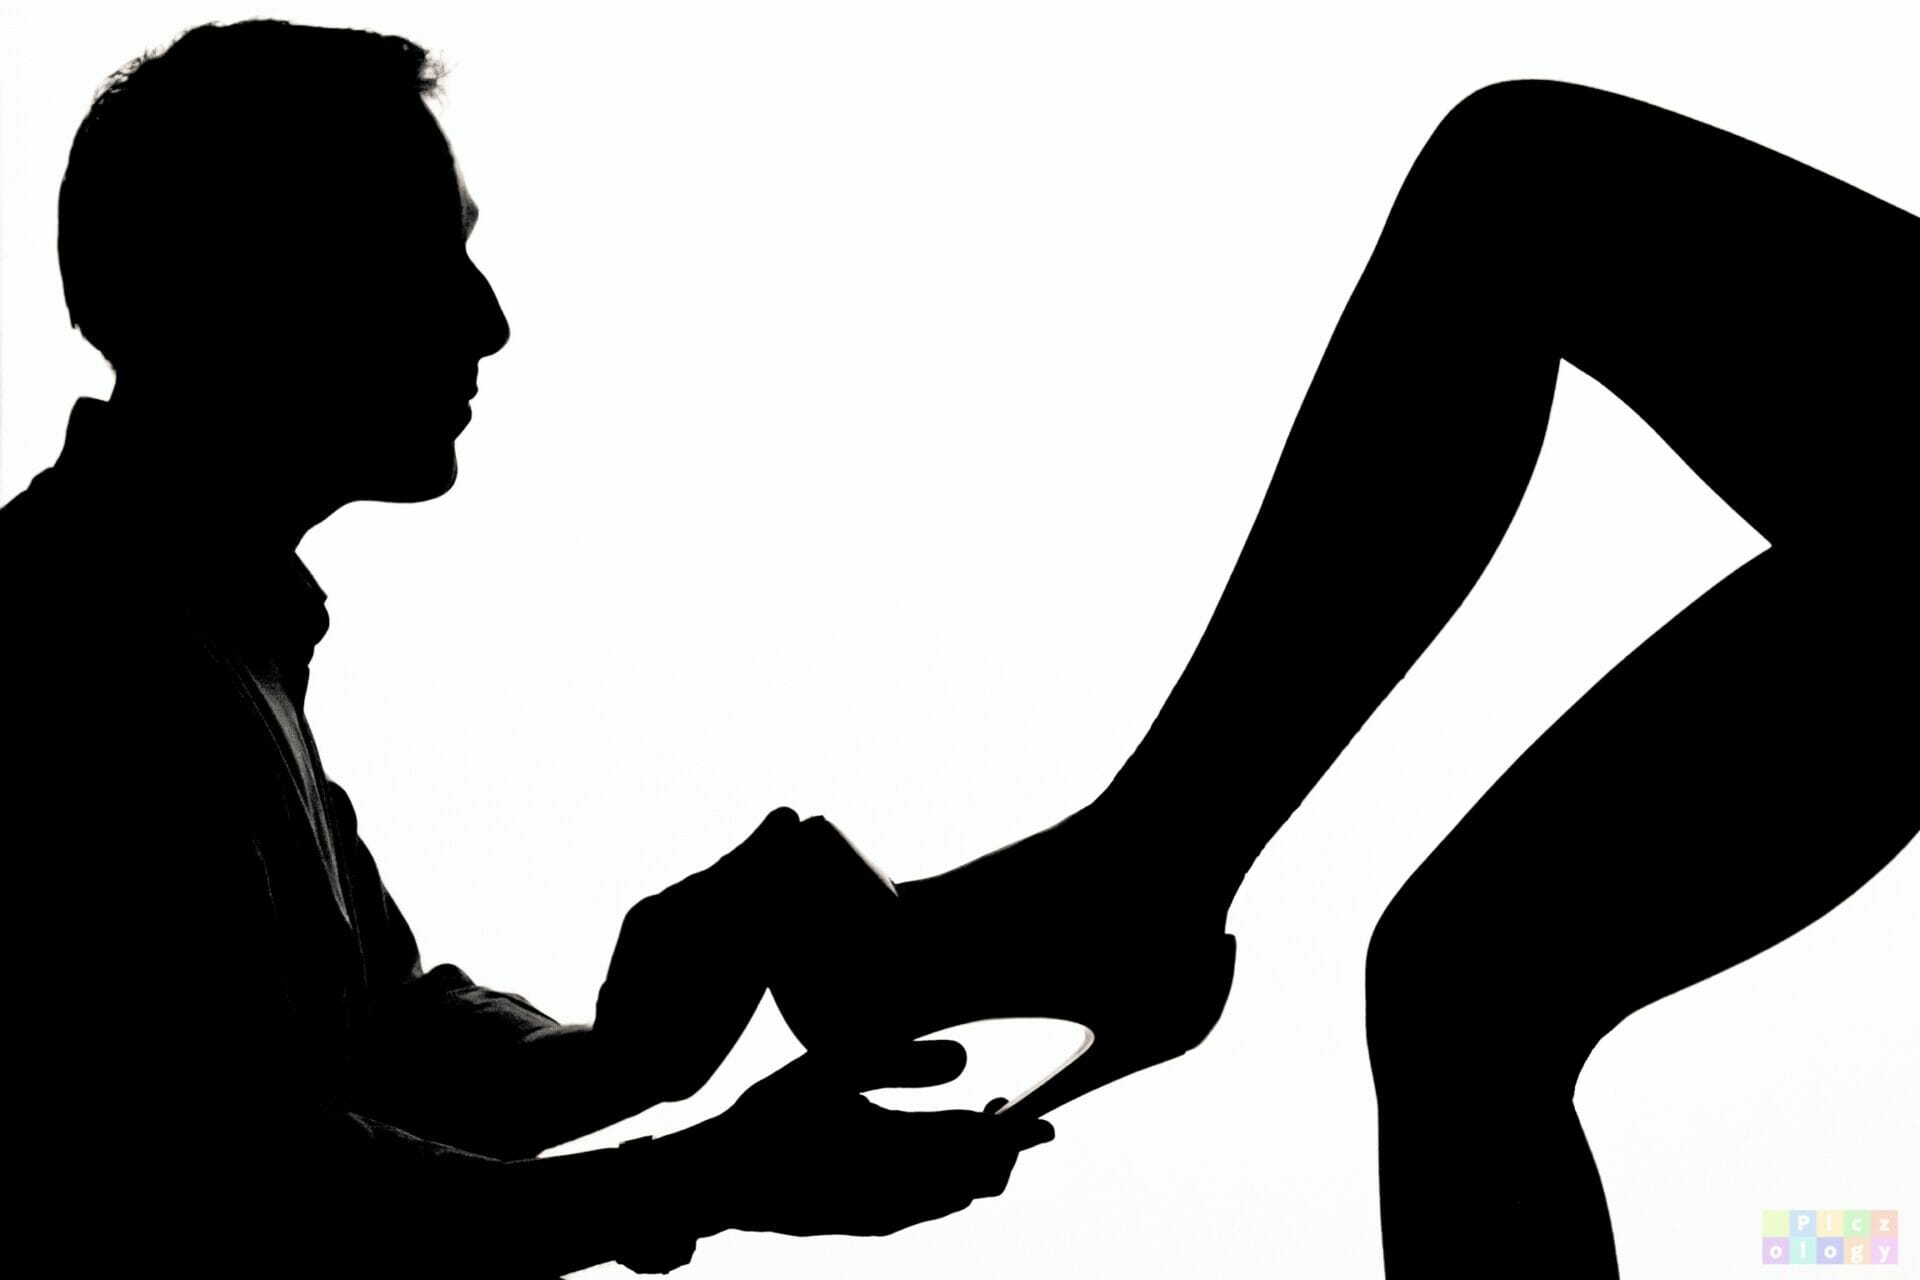 Black and White Photo showing a Silhouette of a Man putting a show on a ladies foot - taken at the Macro, Shape, Form & Texture Photography - Anglesey Photographic Academy Evening